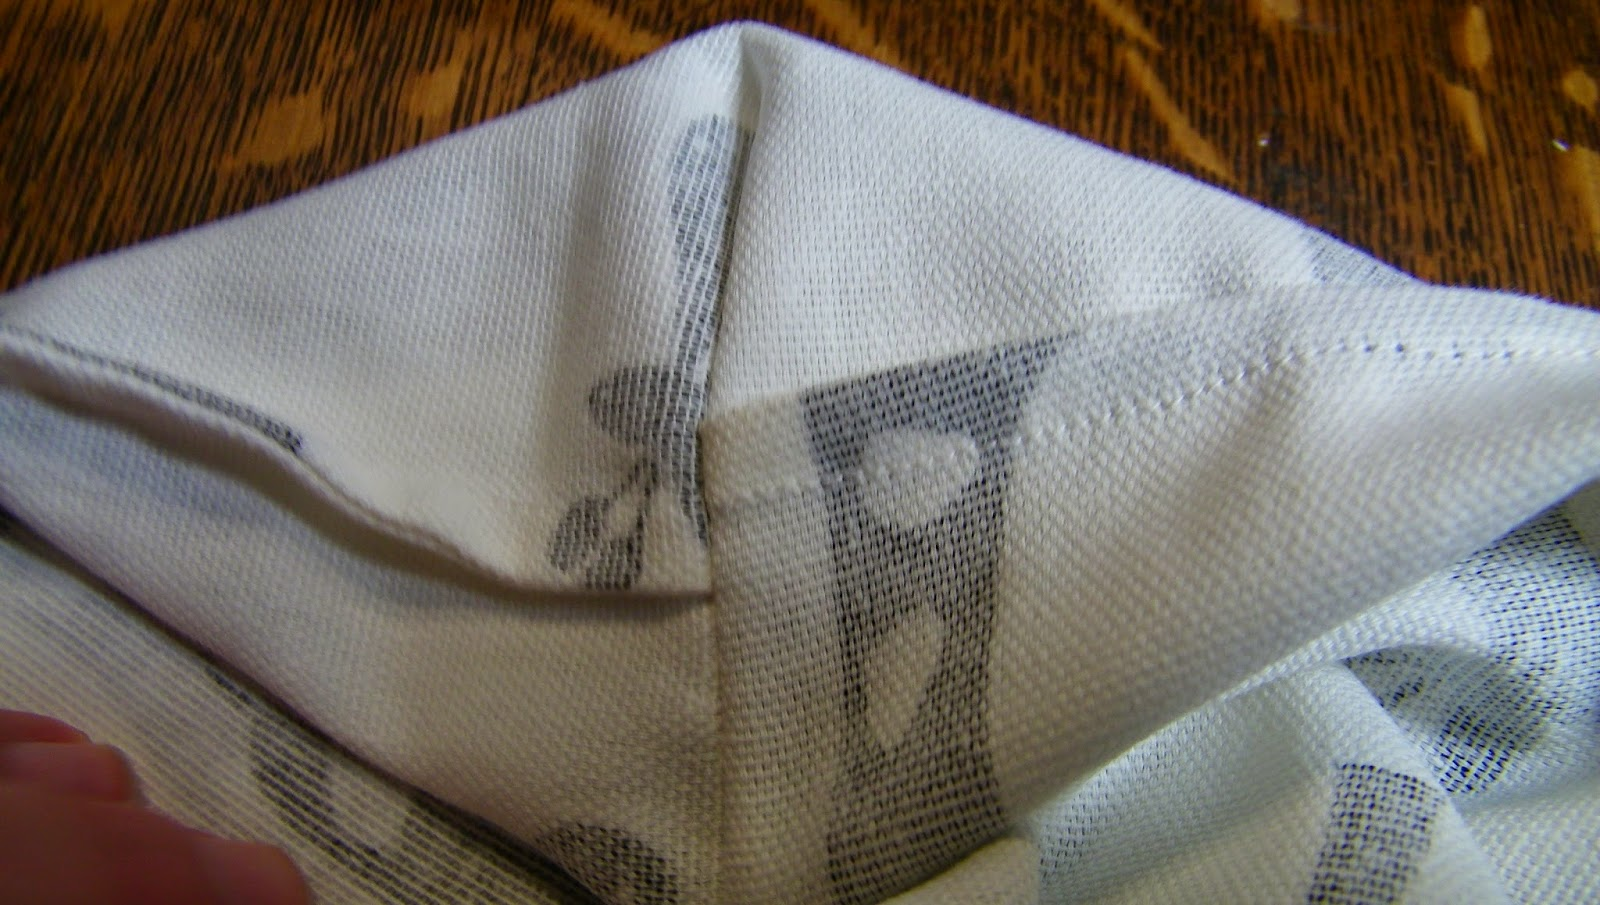 WaggonsWest: French Seams, Boxed Corners